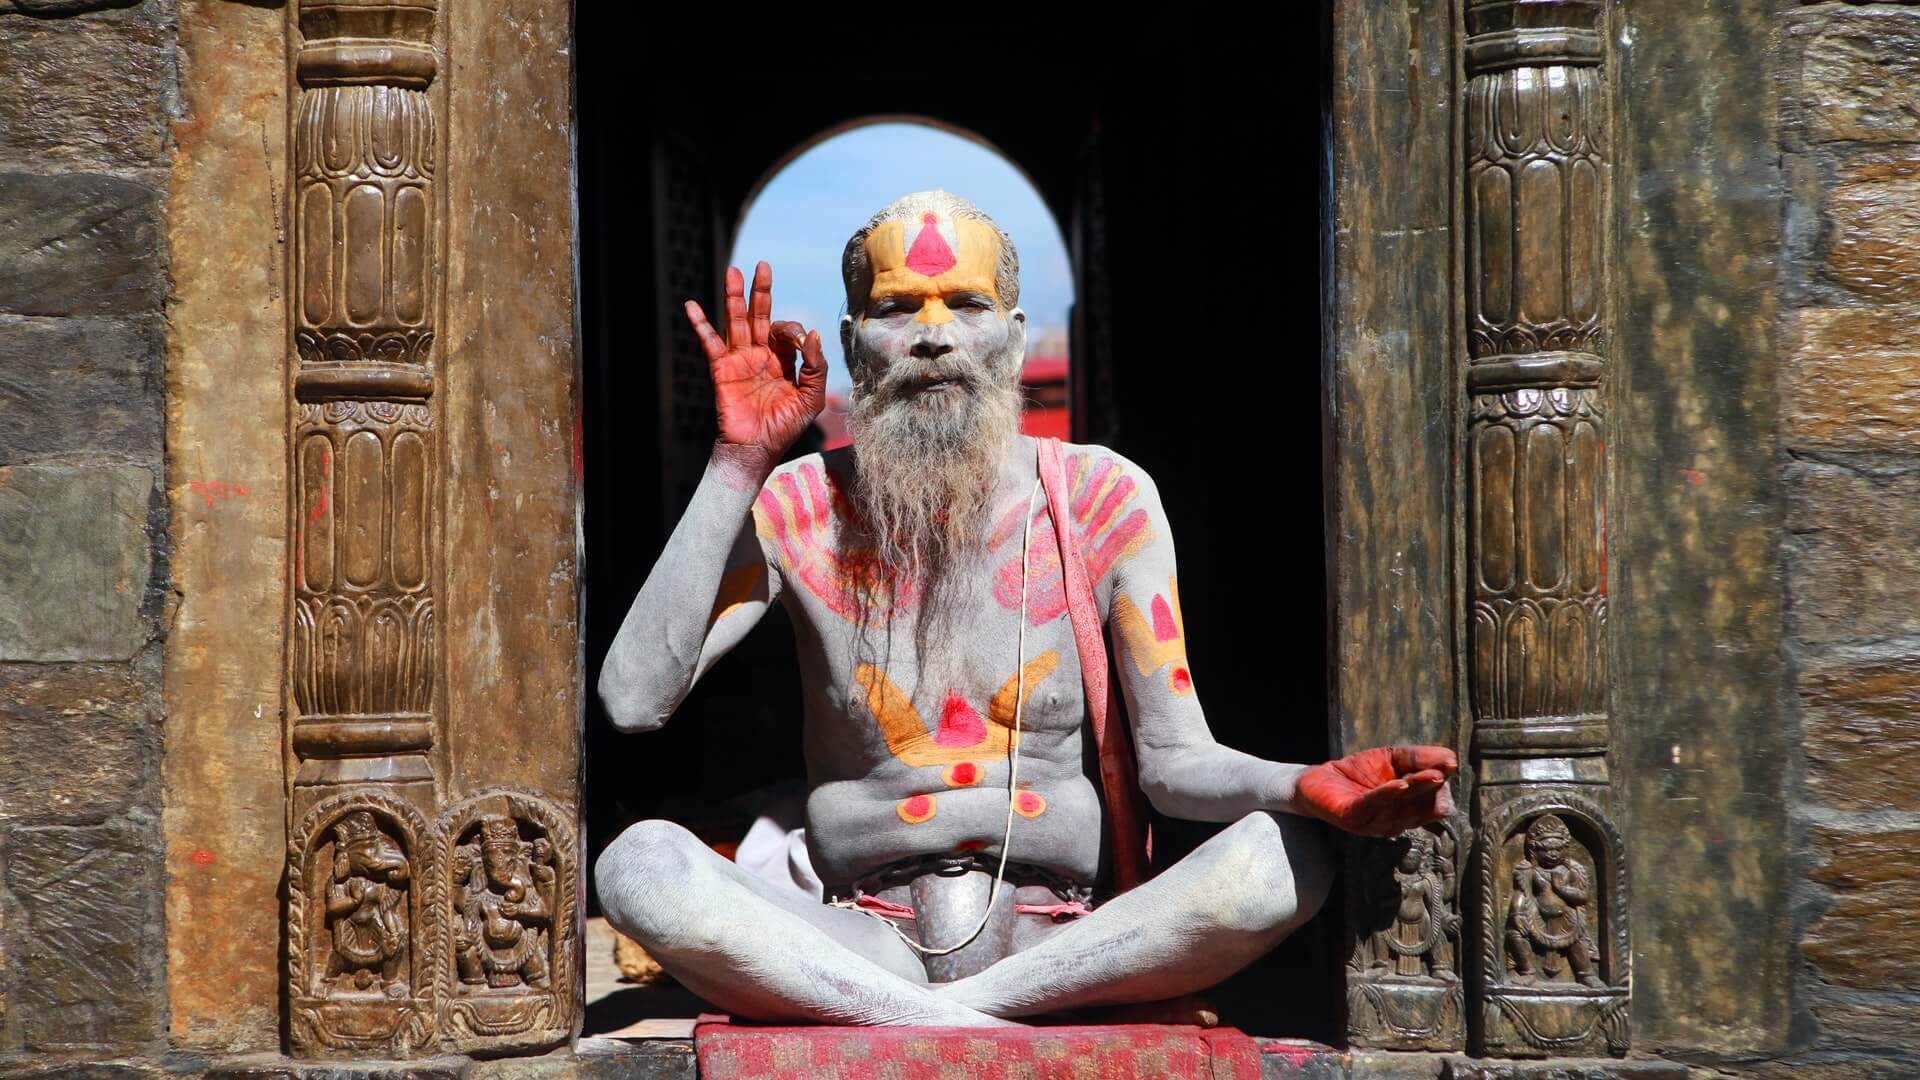 A sadhu in India giving the ok symbol over a well executed drug tourism guide